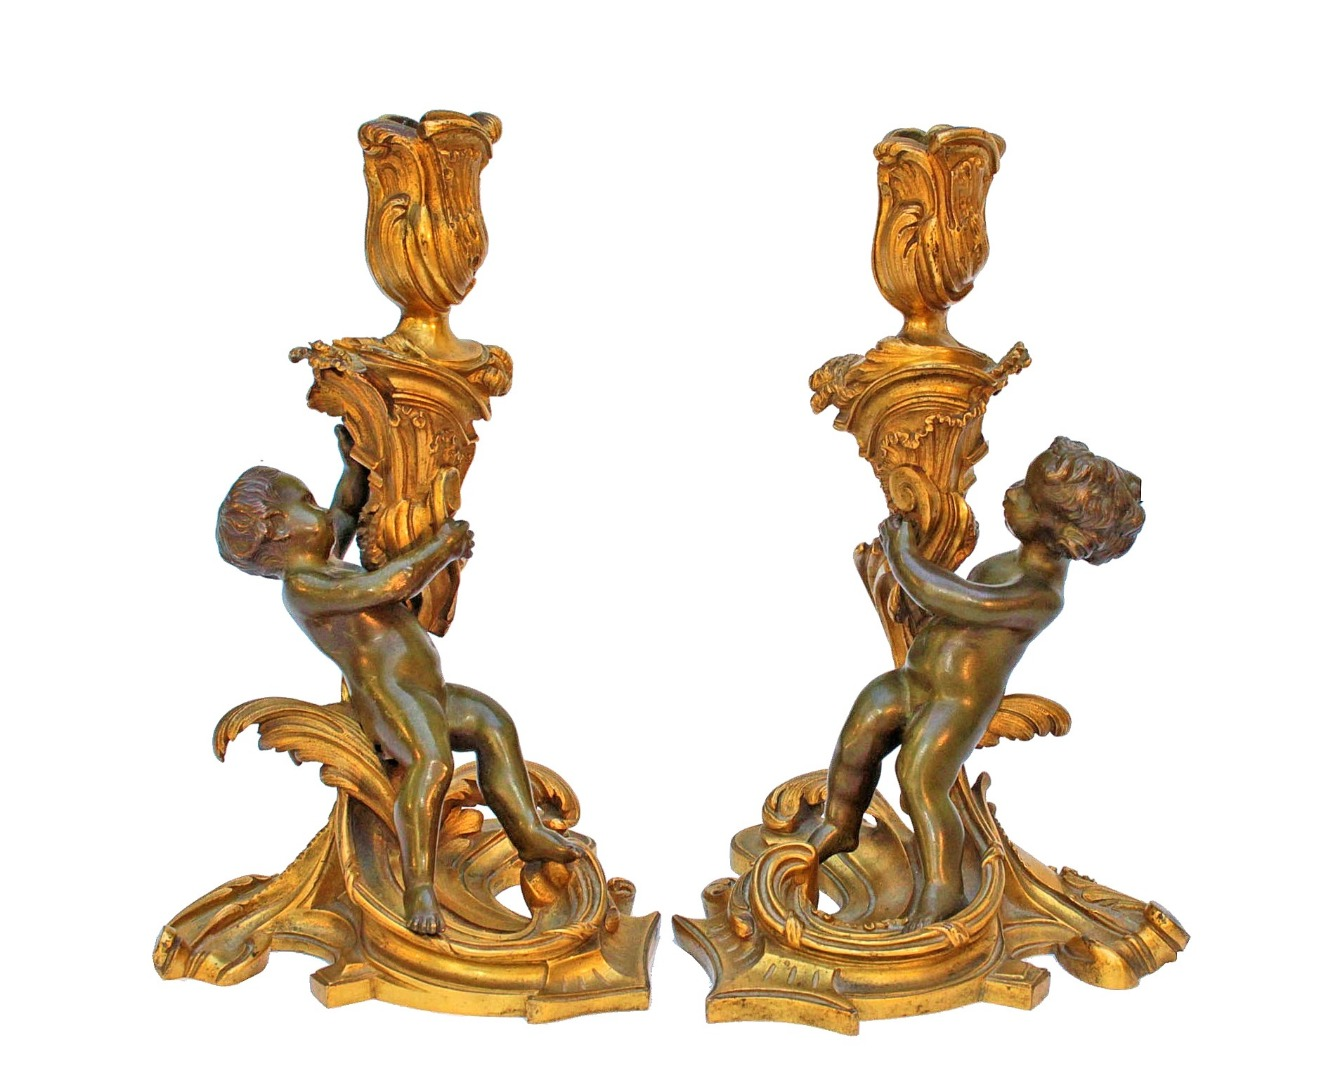 PAIR OF GILT CANDLESTICKS after Juste Aurèle Meissonnier (1695-1750)